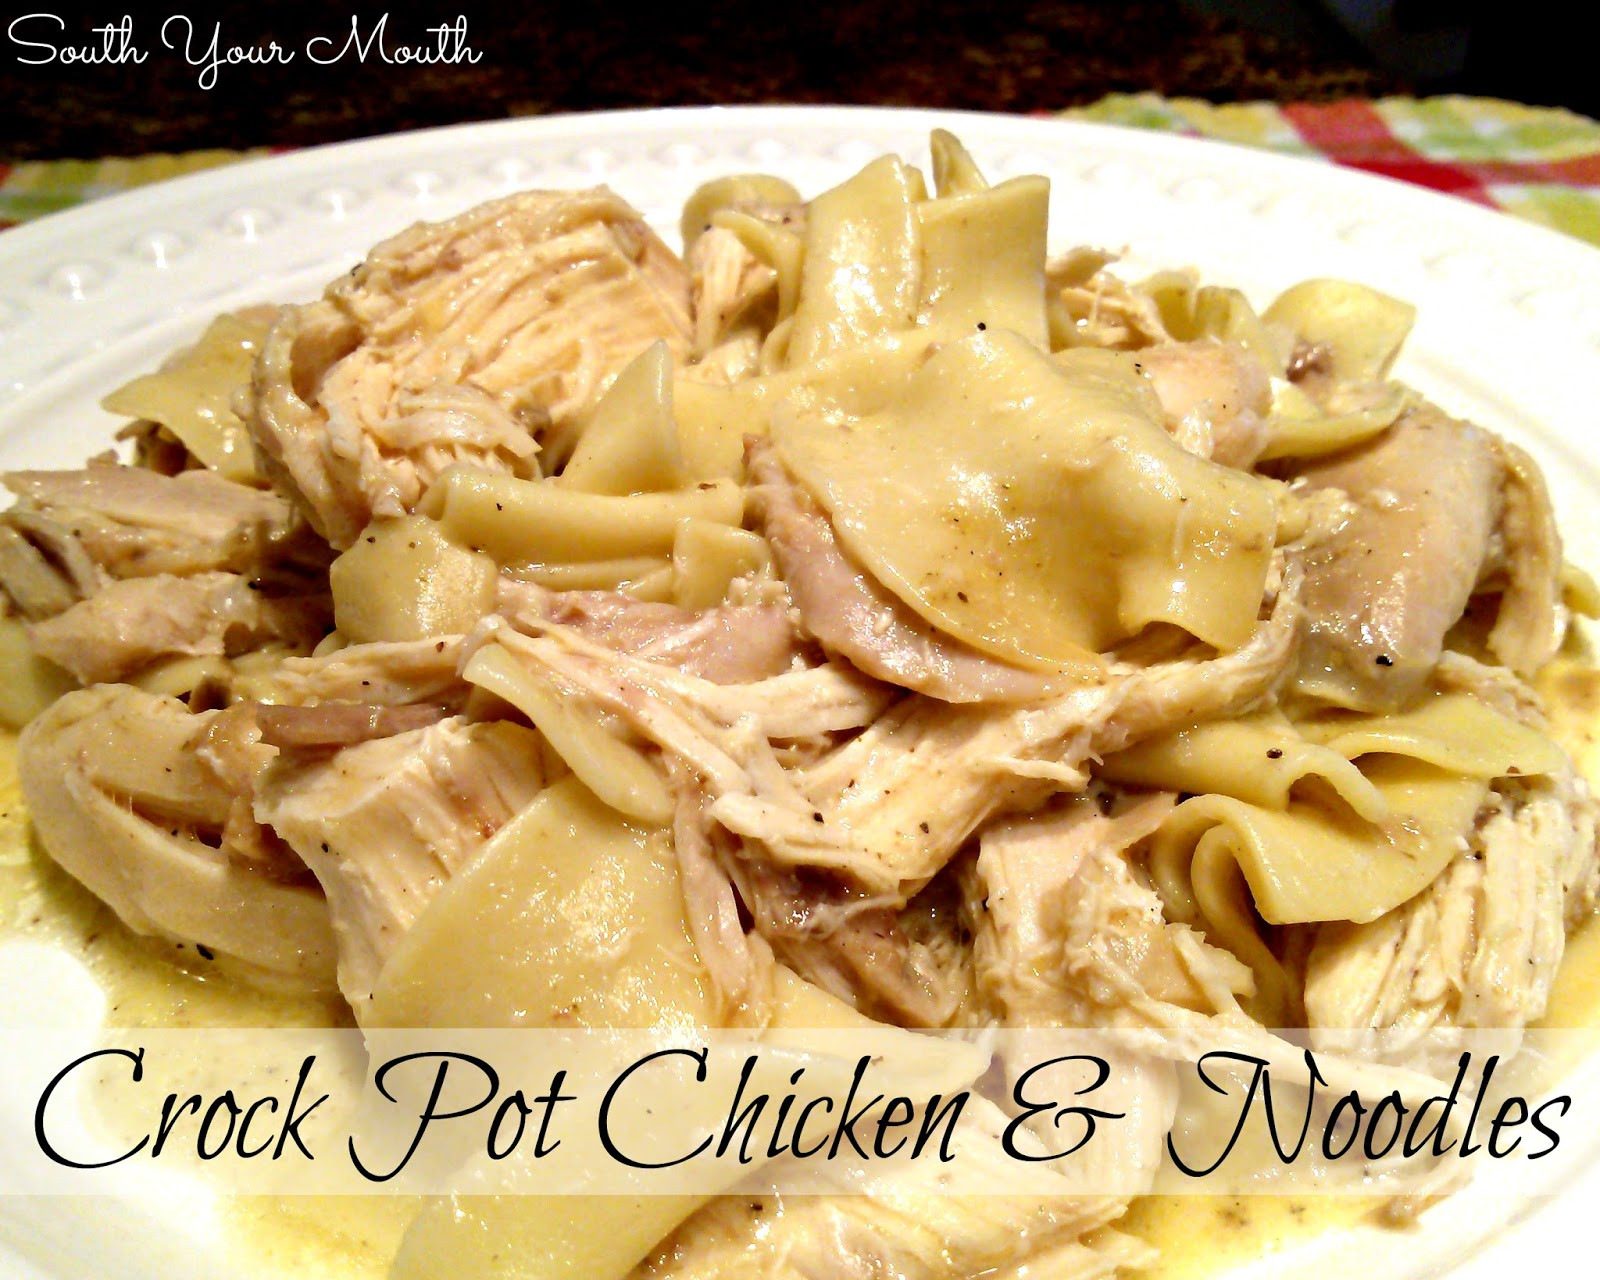 Crockpot Chicken And Noodles  South Your Mouth Crock Pot Chicken and Noodles